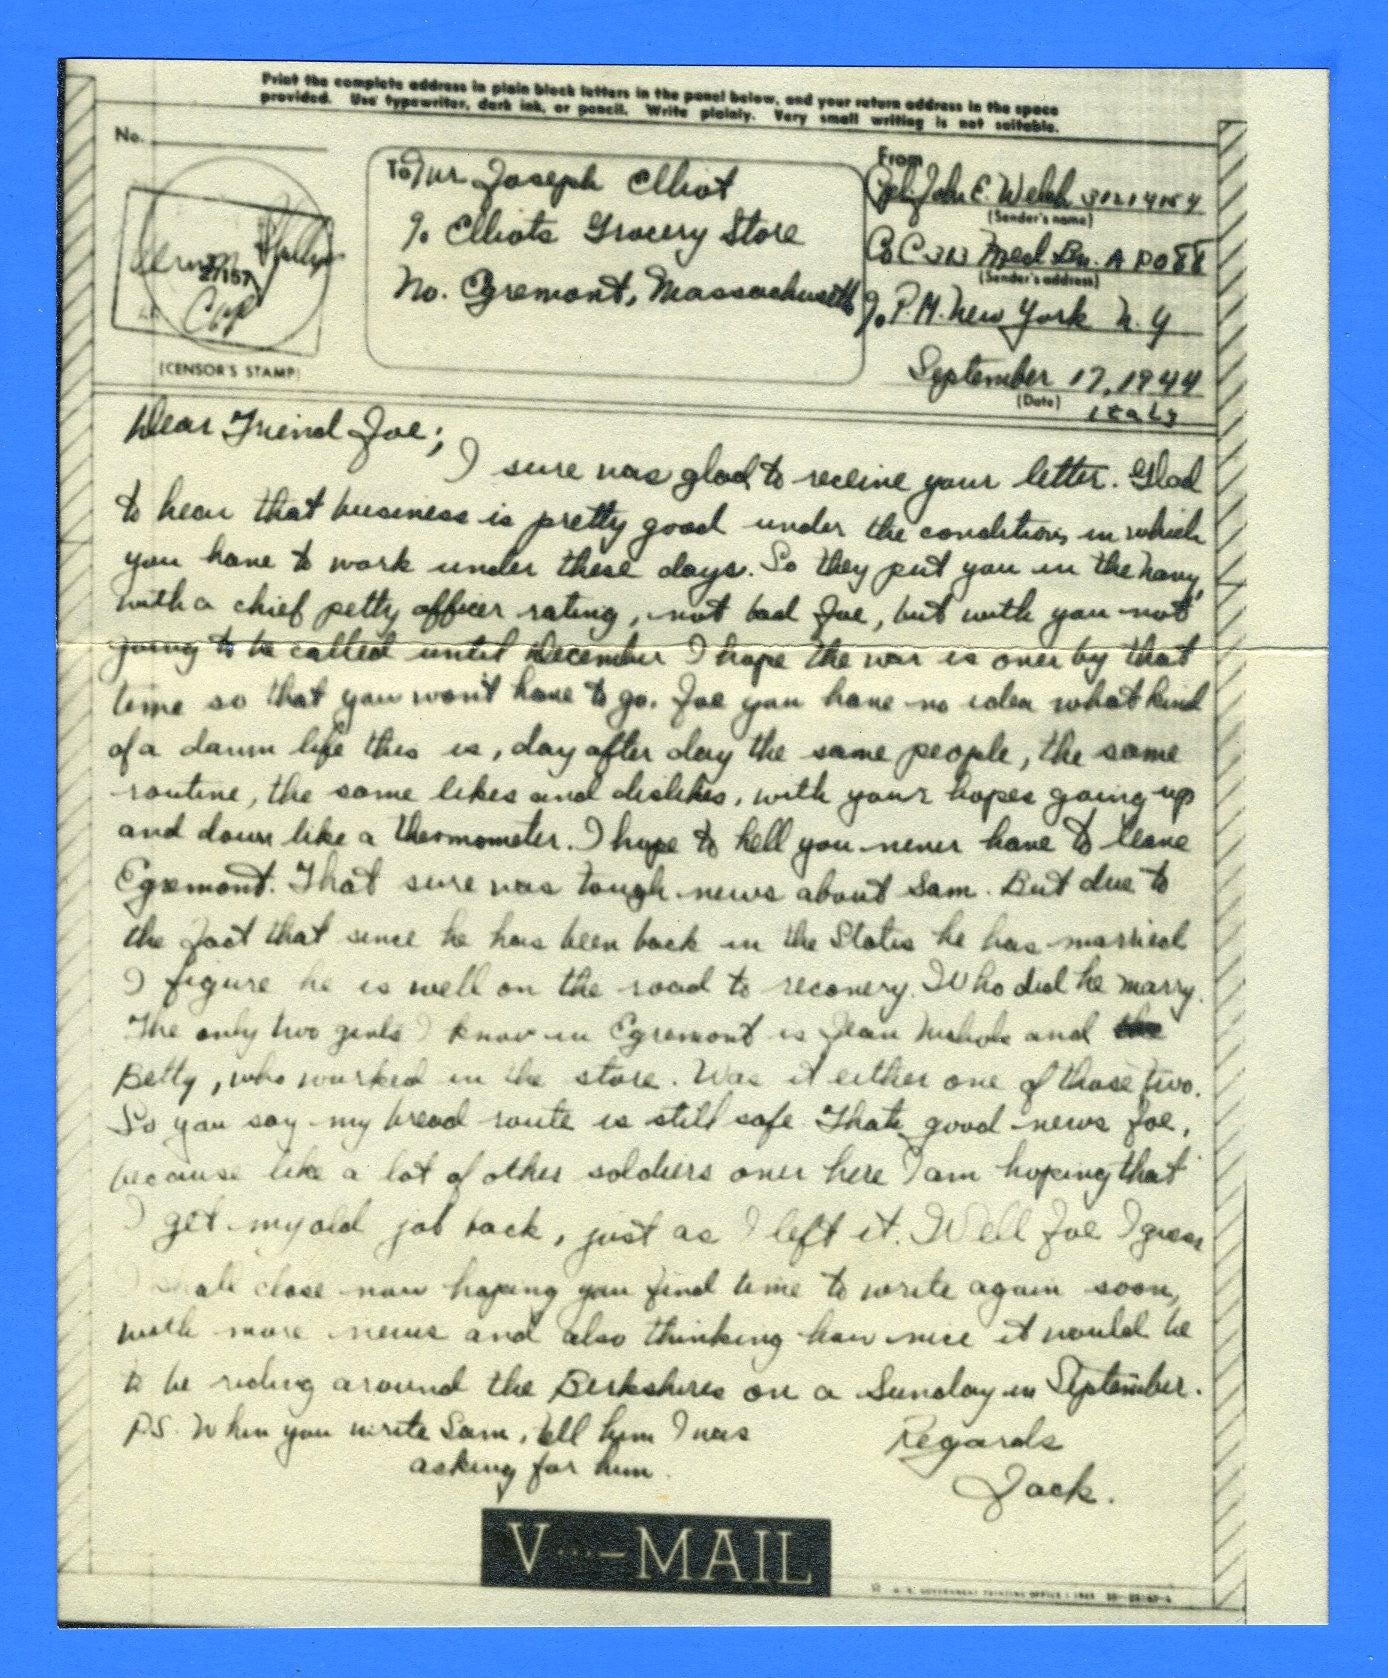 Soldier's Censored V Mail APO 88 Florence, Italy September 17, 1944